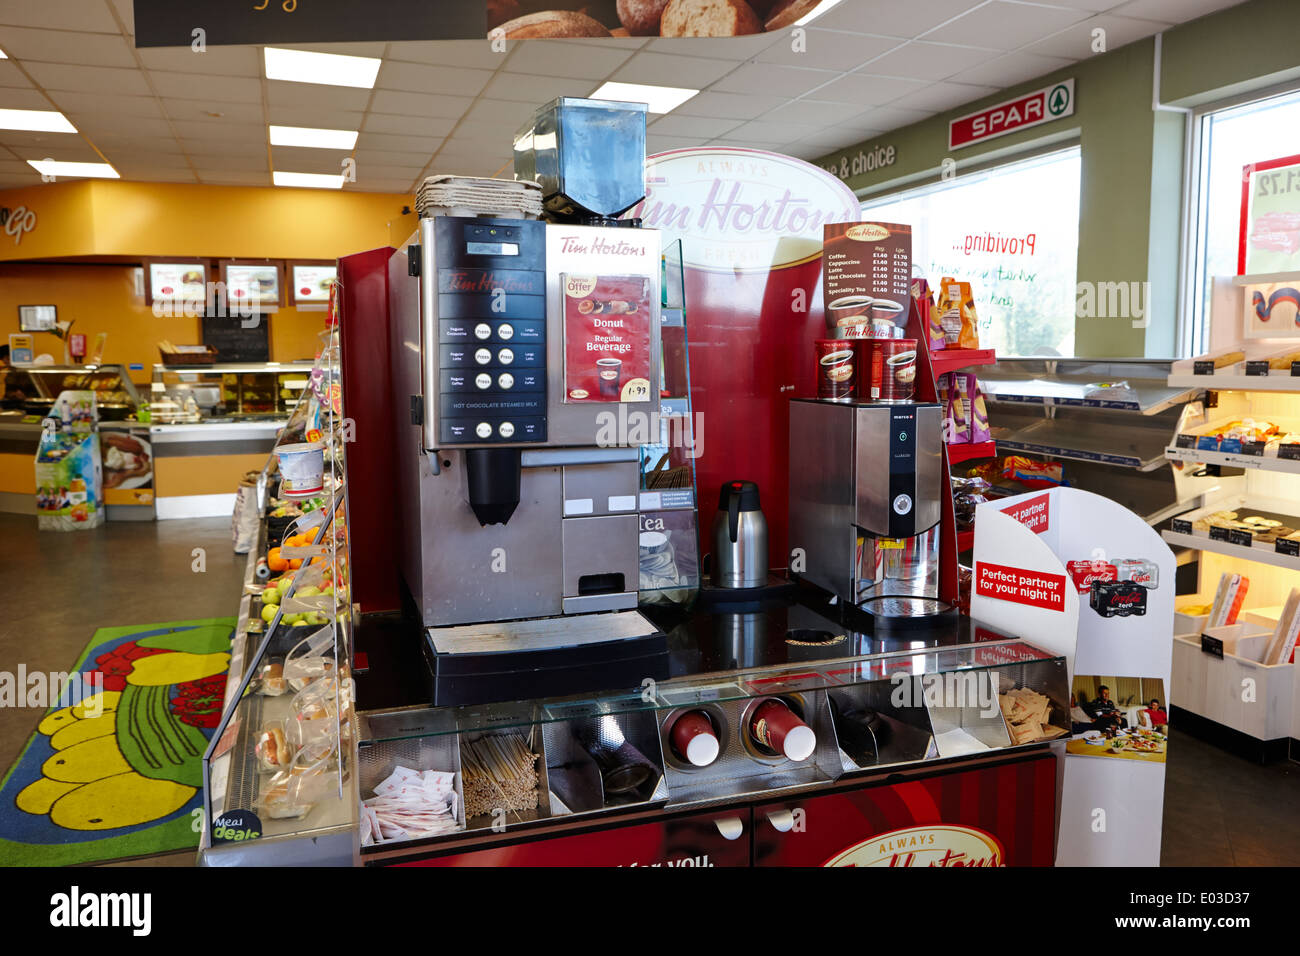 Tim Hortons Coffee Maker Manual : tim hortons coffee machine in a filling station convenience store in Stock Photo, Royalty Free ...